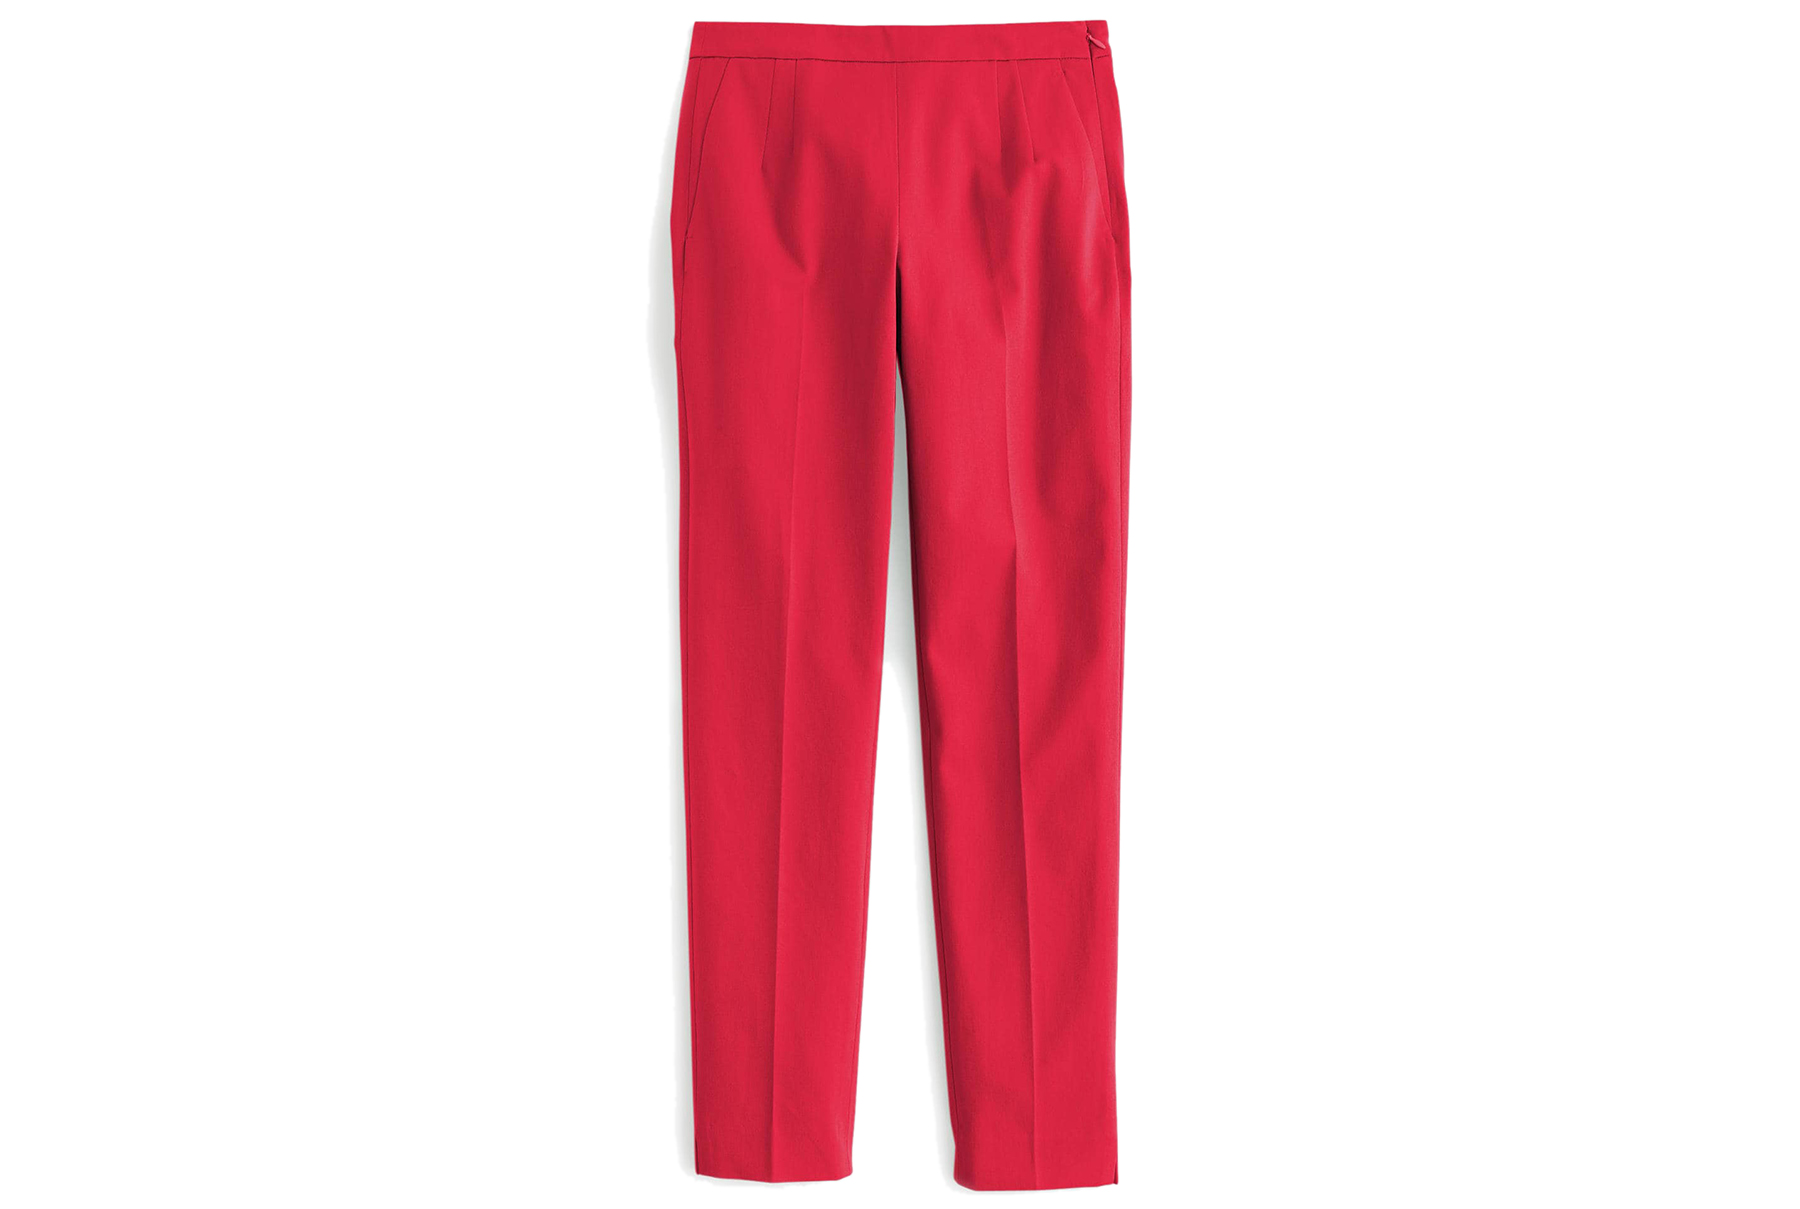 J.Crew Martie Slim Crop Pant in Two-Way Stretch Cotton in red